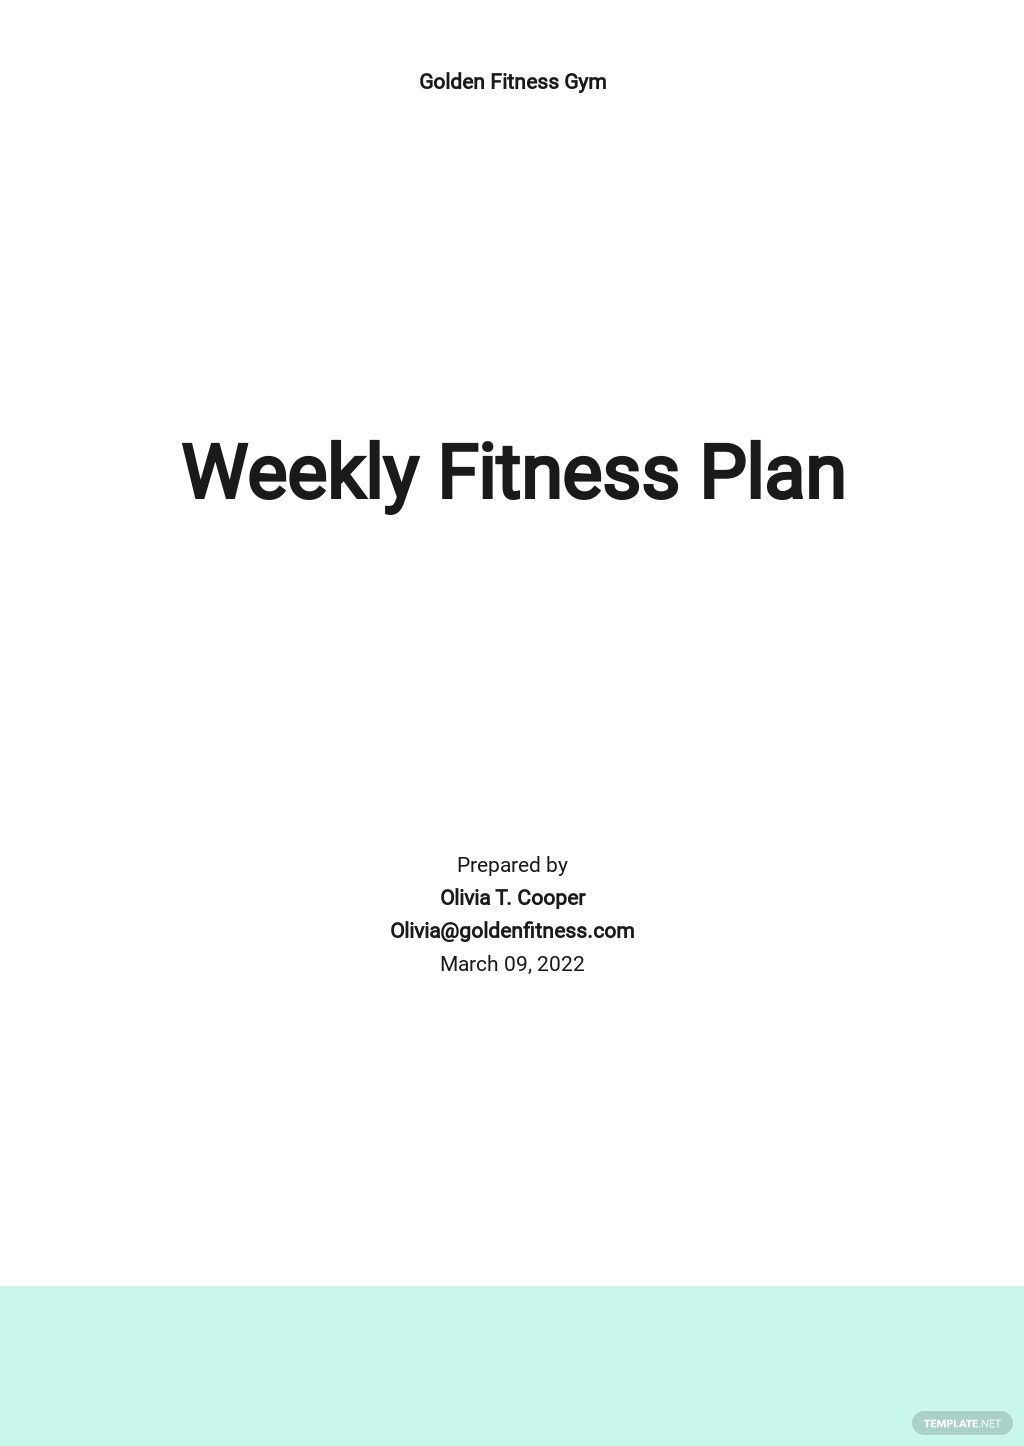 Weekly Fitness Plan Template